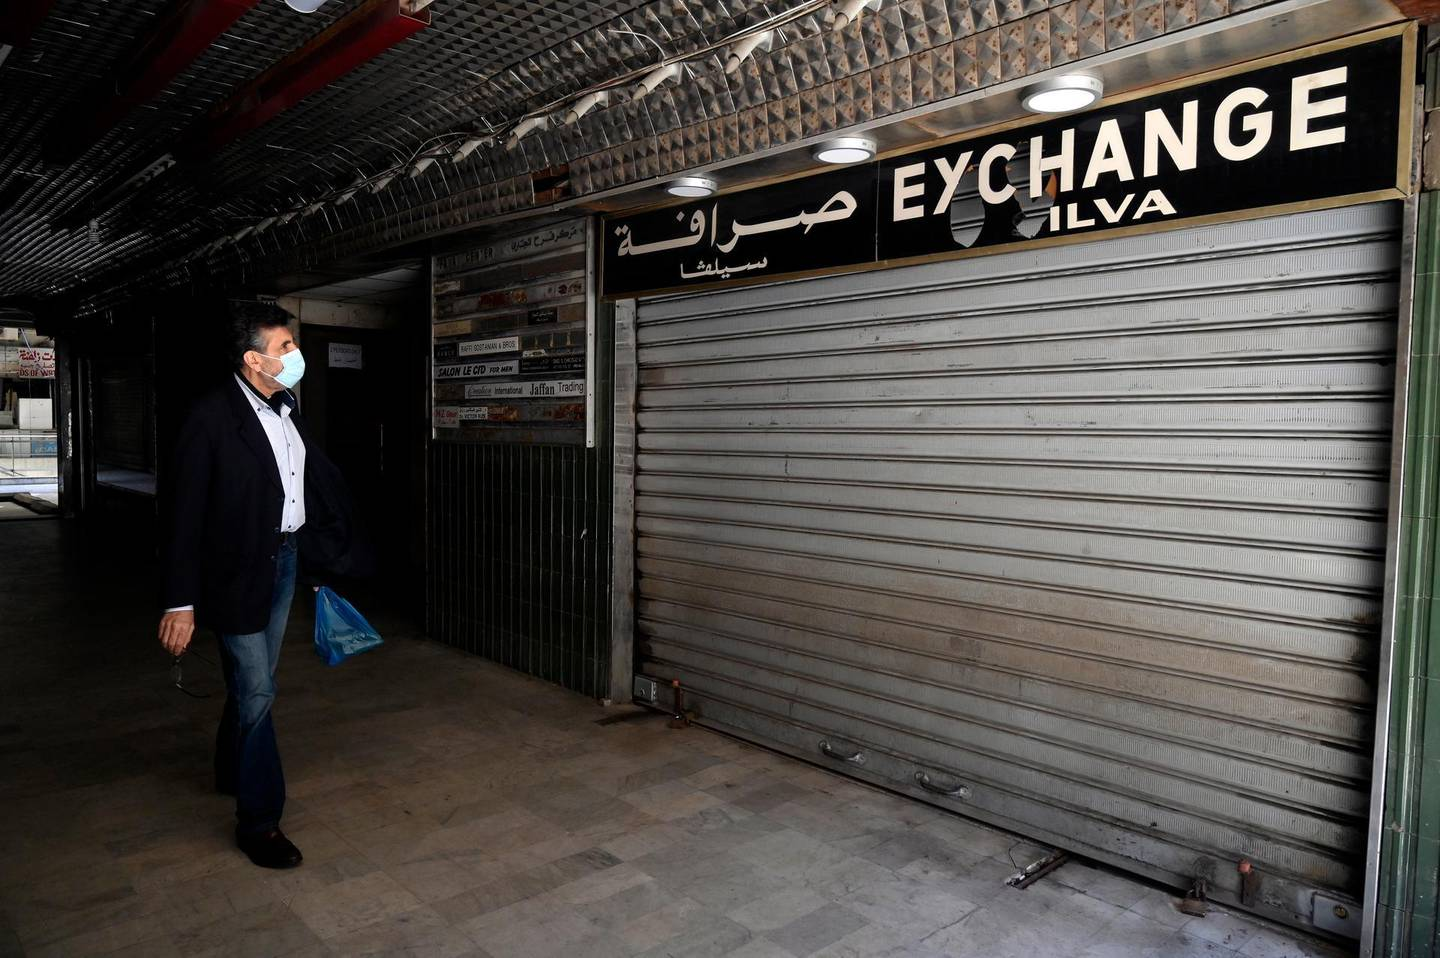 epa09079730 A man walks in front of a closed currency exchange shop at Hamra street in Beirut, Lebanon, 17 March 2021. The Lebanese pounds was exchanging at around 14,500 to the US dollar after the Lebanese pound has lost more than 85 percent of its value against the dollar on the black market in the worst economic crisis in Lebanon.  EPA/WAEL HAMZEH